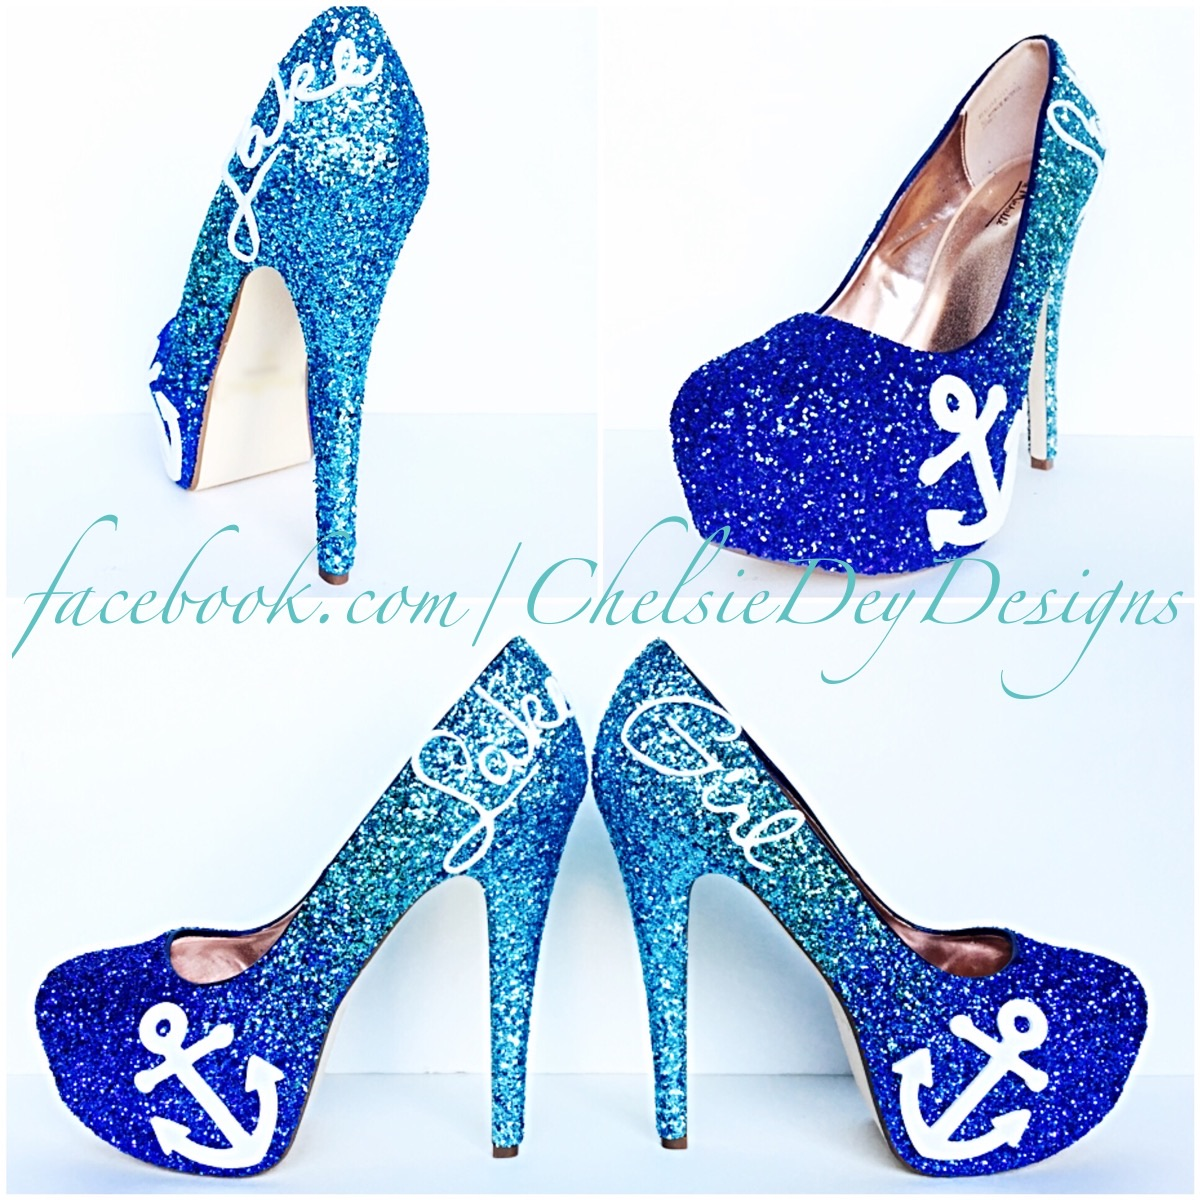 586a70deb0011 Glitter High Heels - Blue and Silver Pumps - Lake Girl Aqua Turquoise Ombre  Platform Shoes - Fade Two Tone Heels - Sparkly Glitzy Wedding Heels